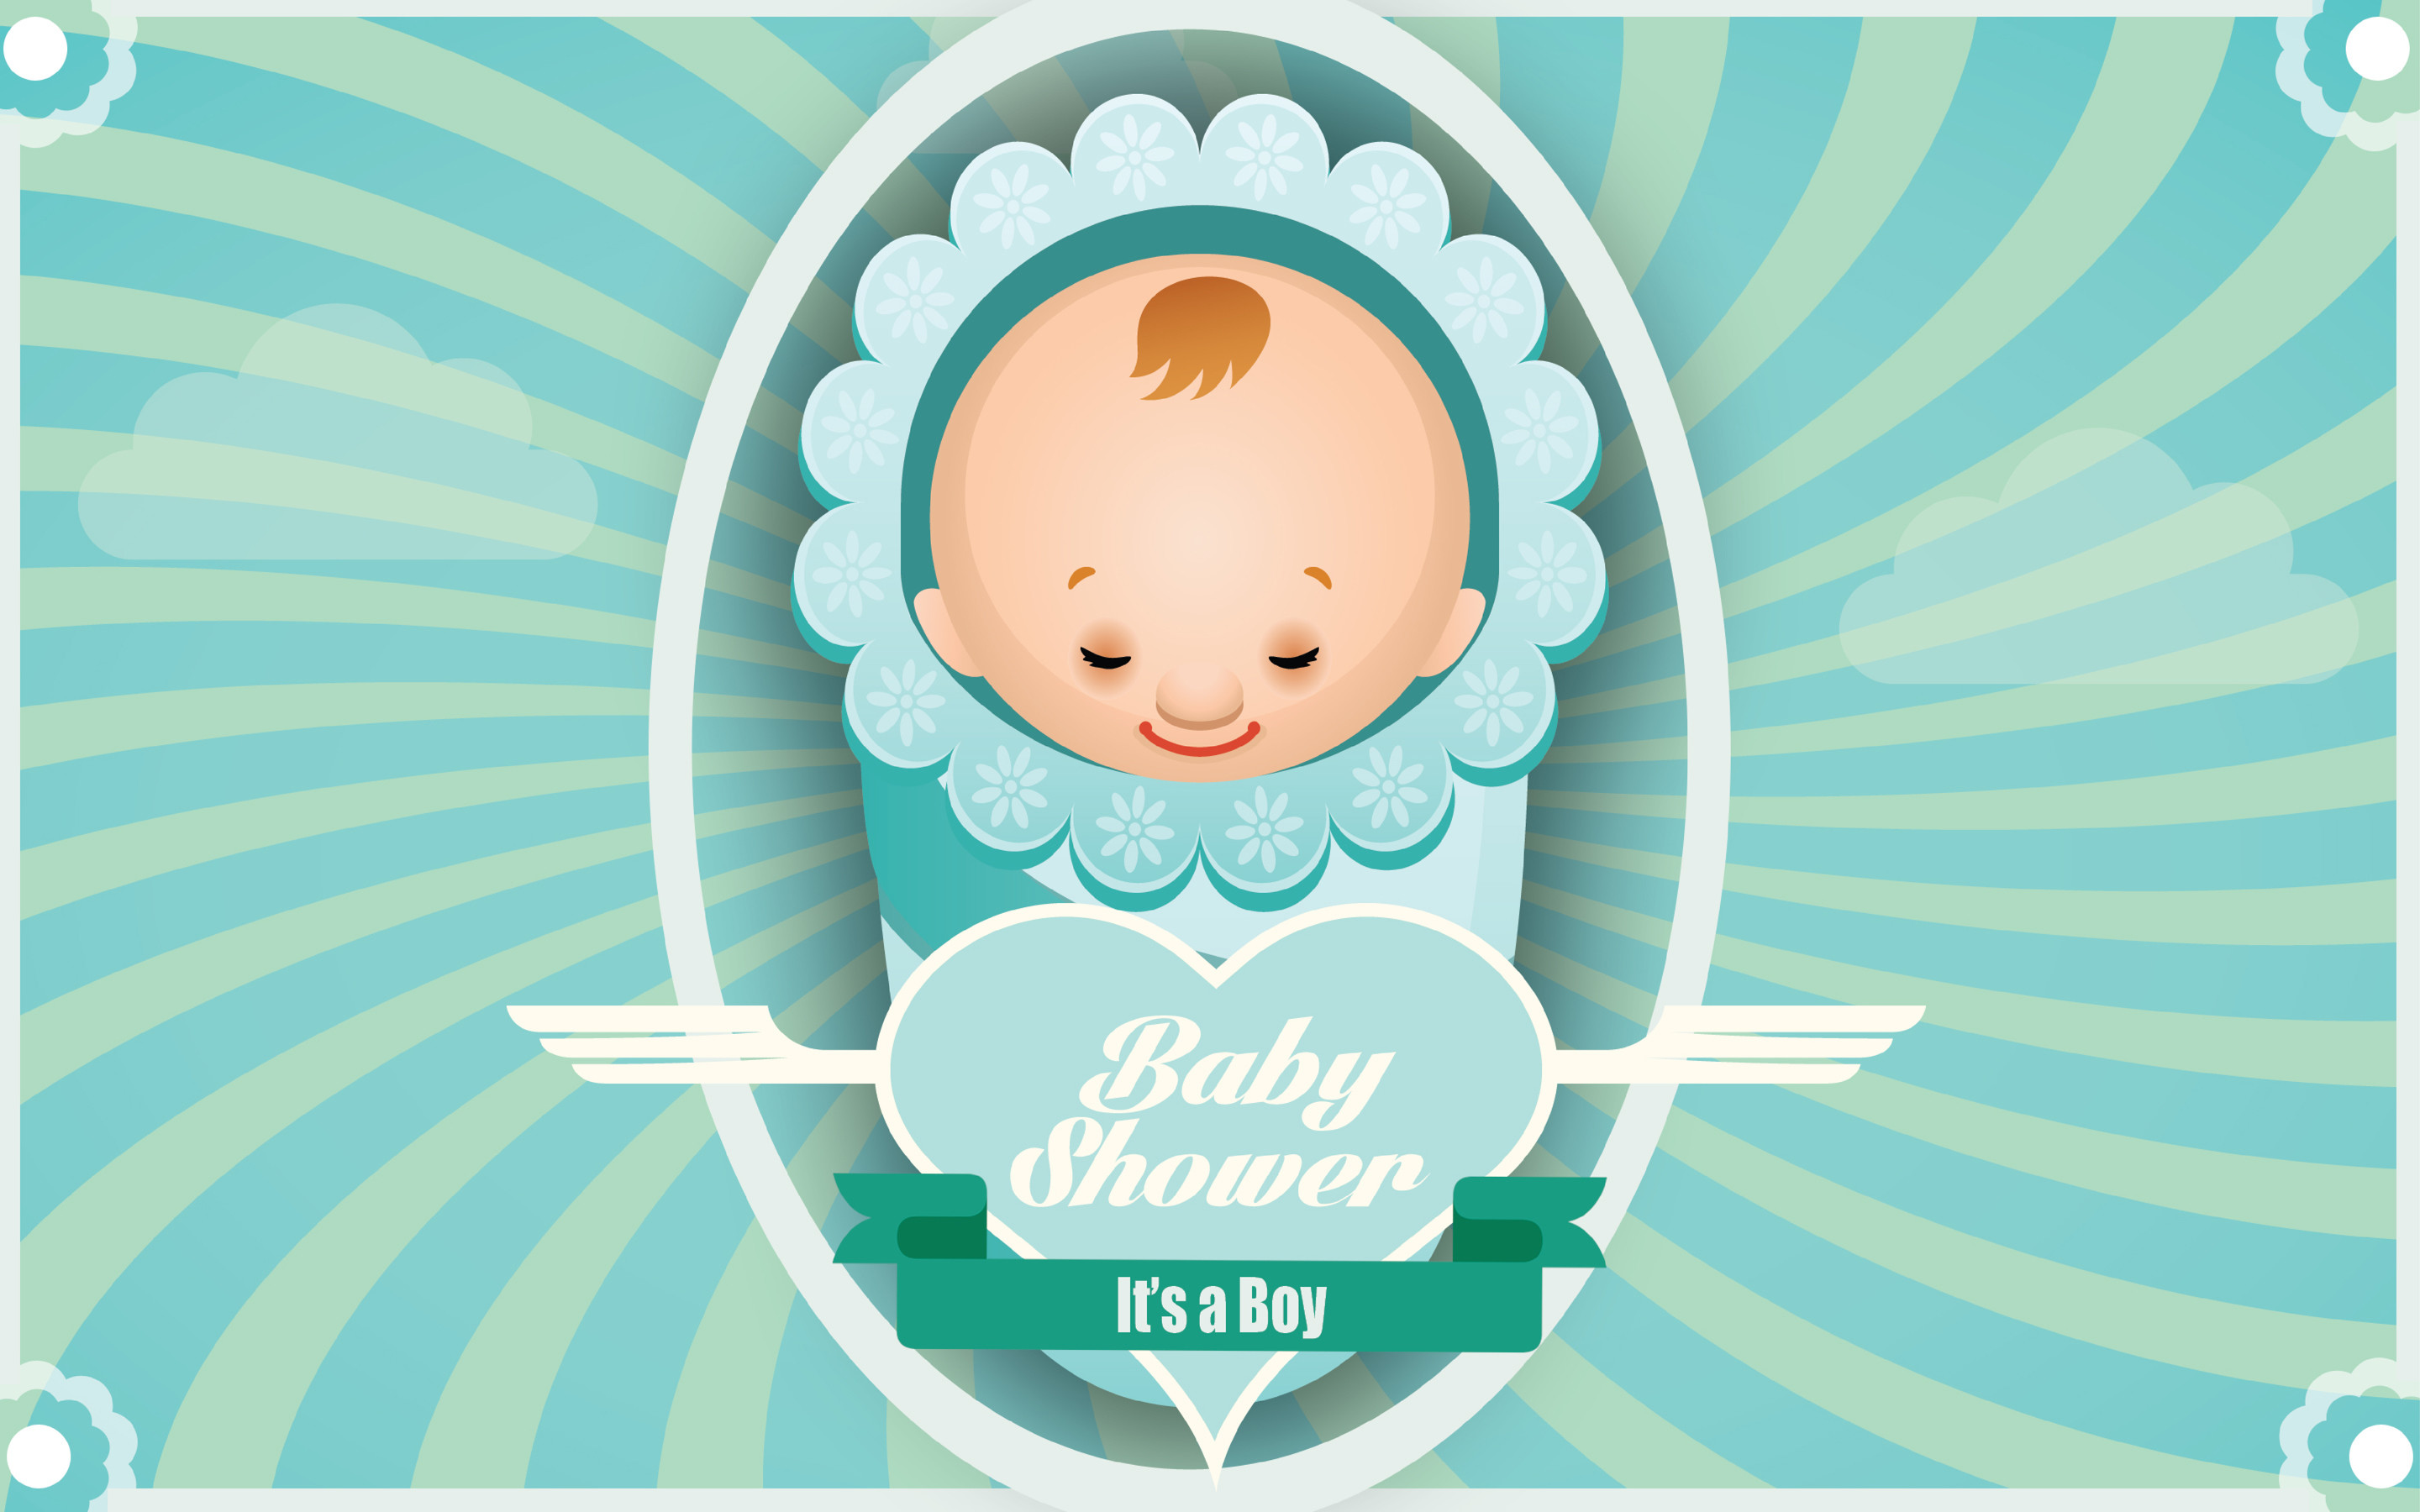 Baby Shower Wallpaper Images (31+ Images